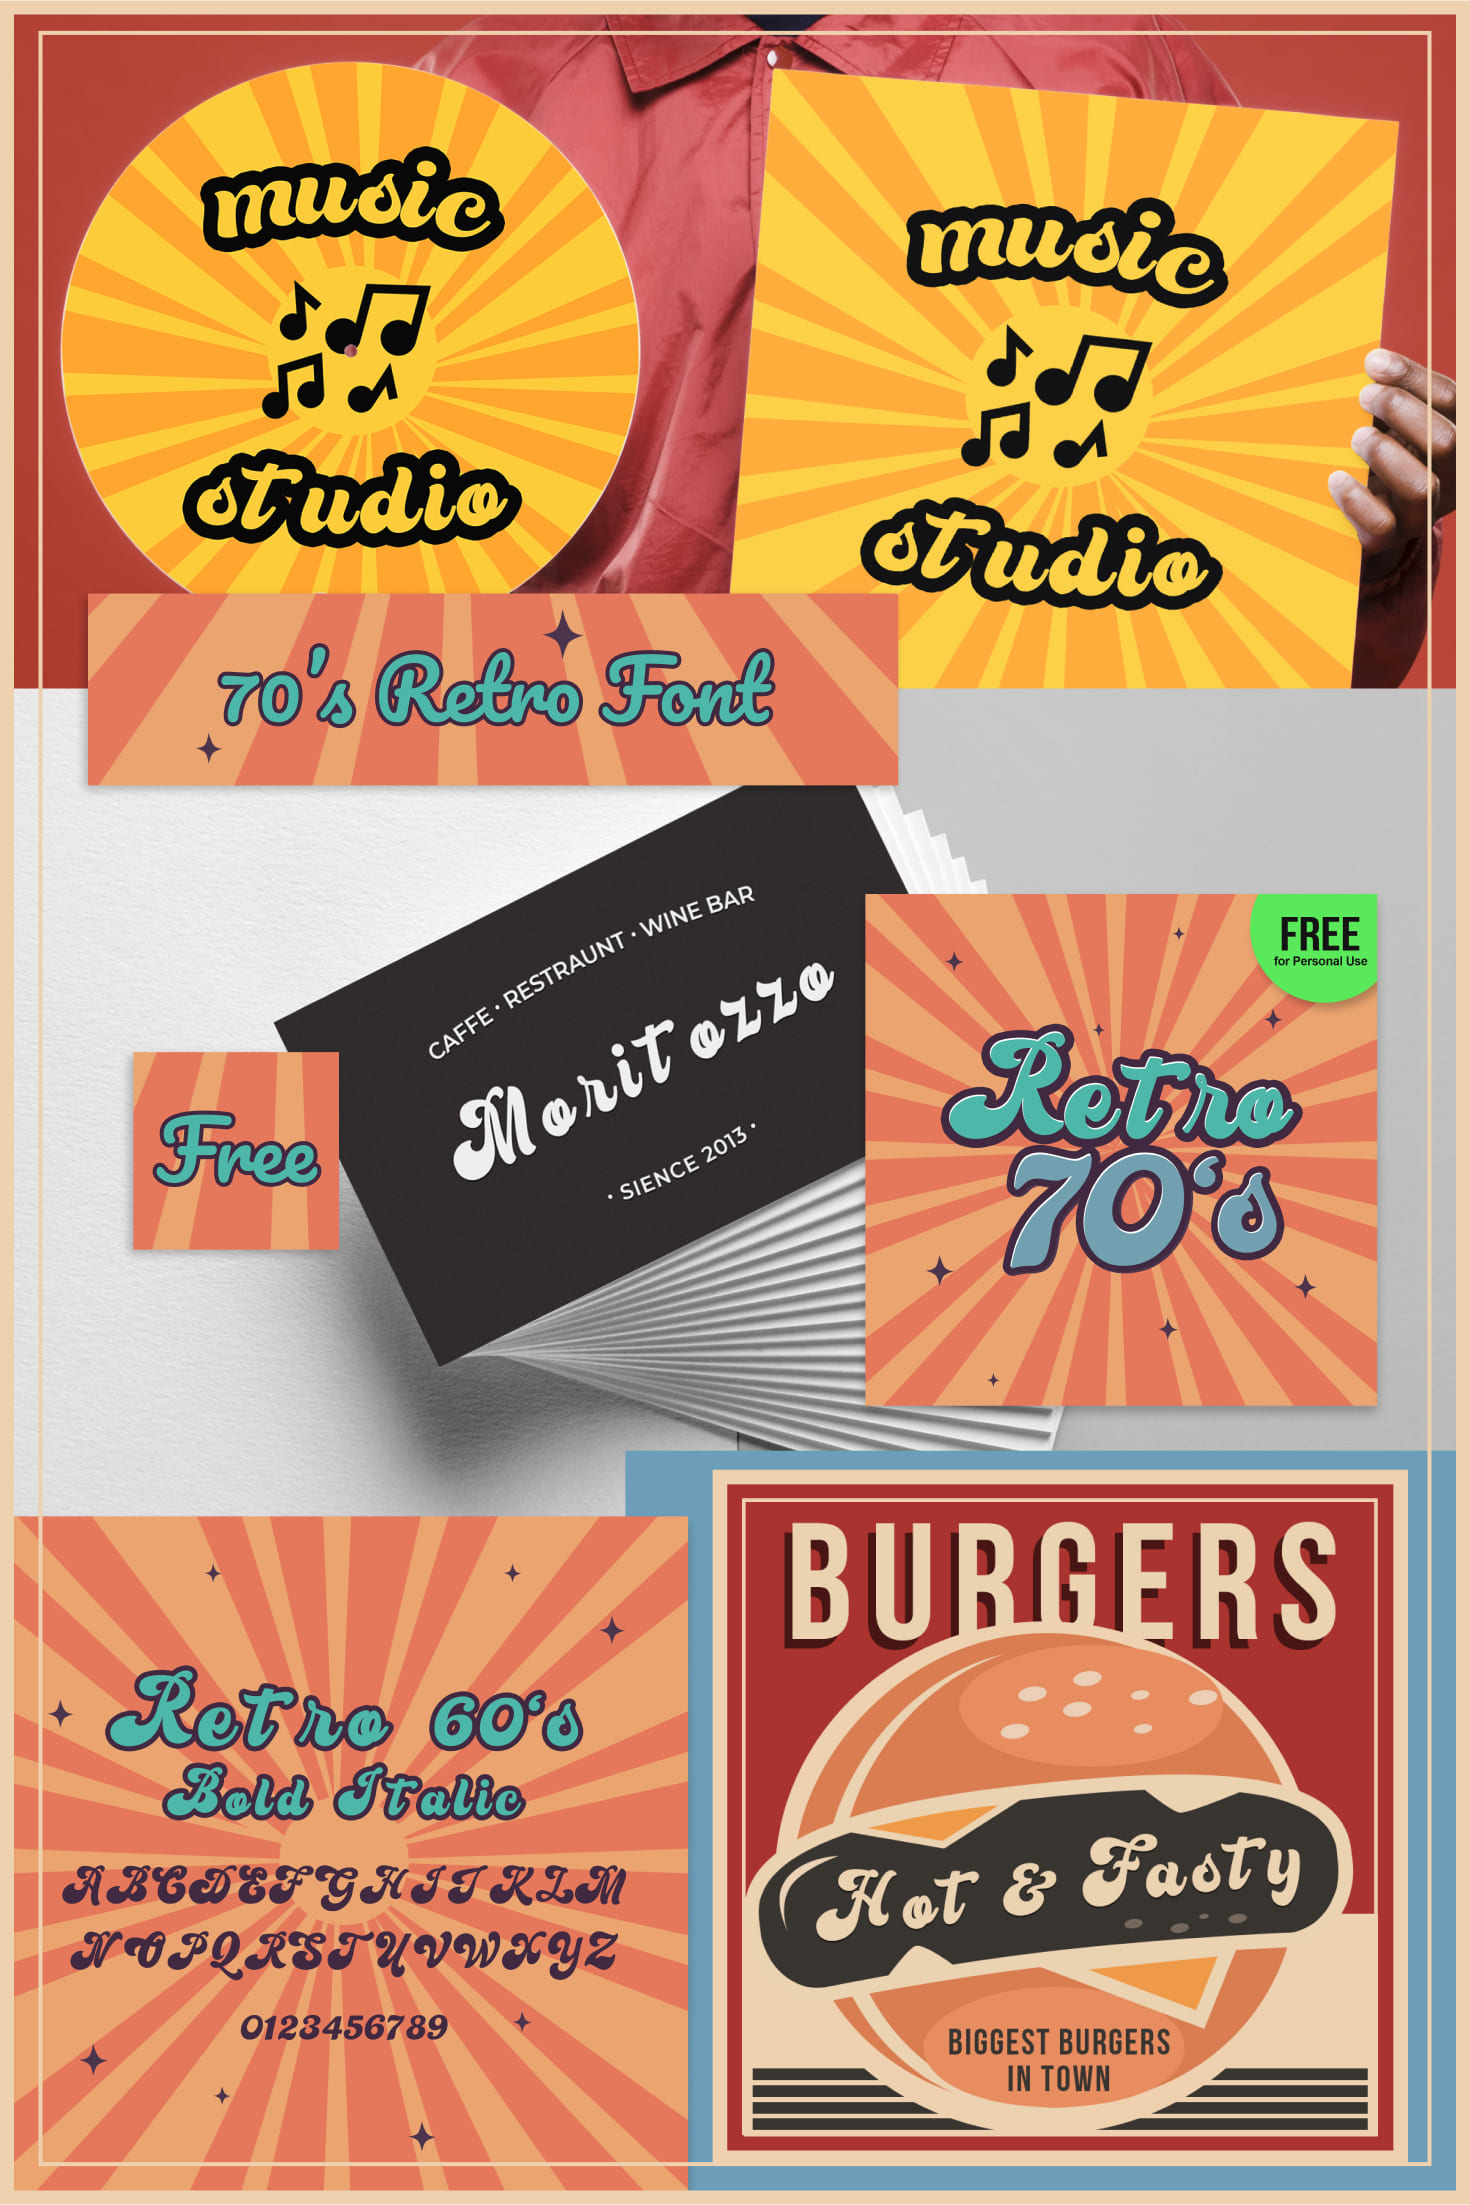 Pinterest Image: Free 70's Retro Font | Personal Use Only.